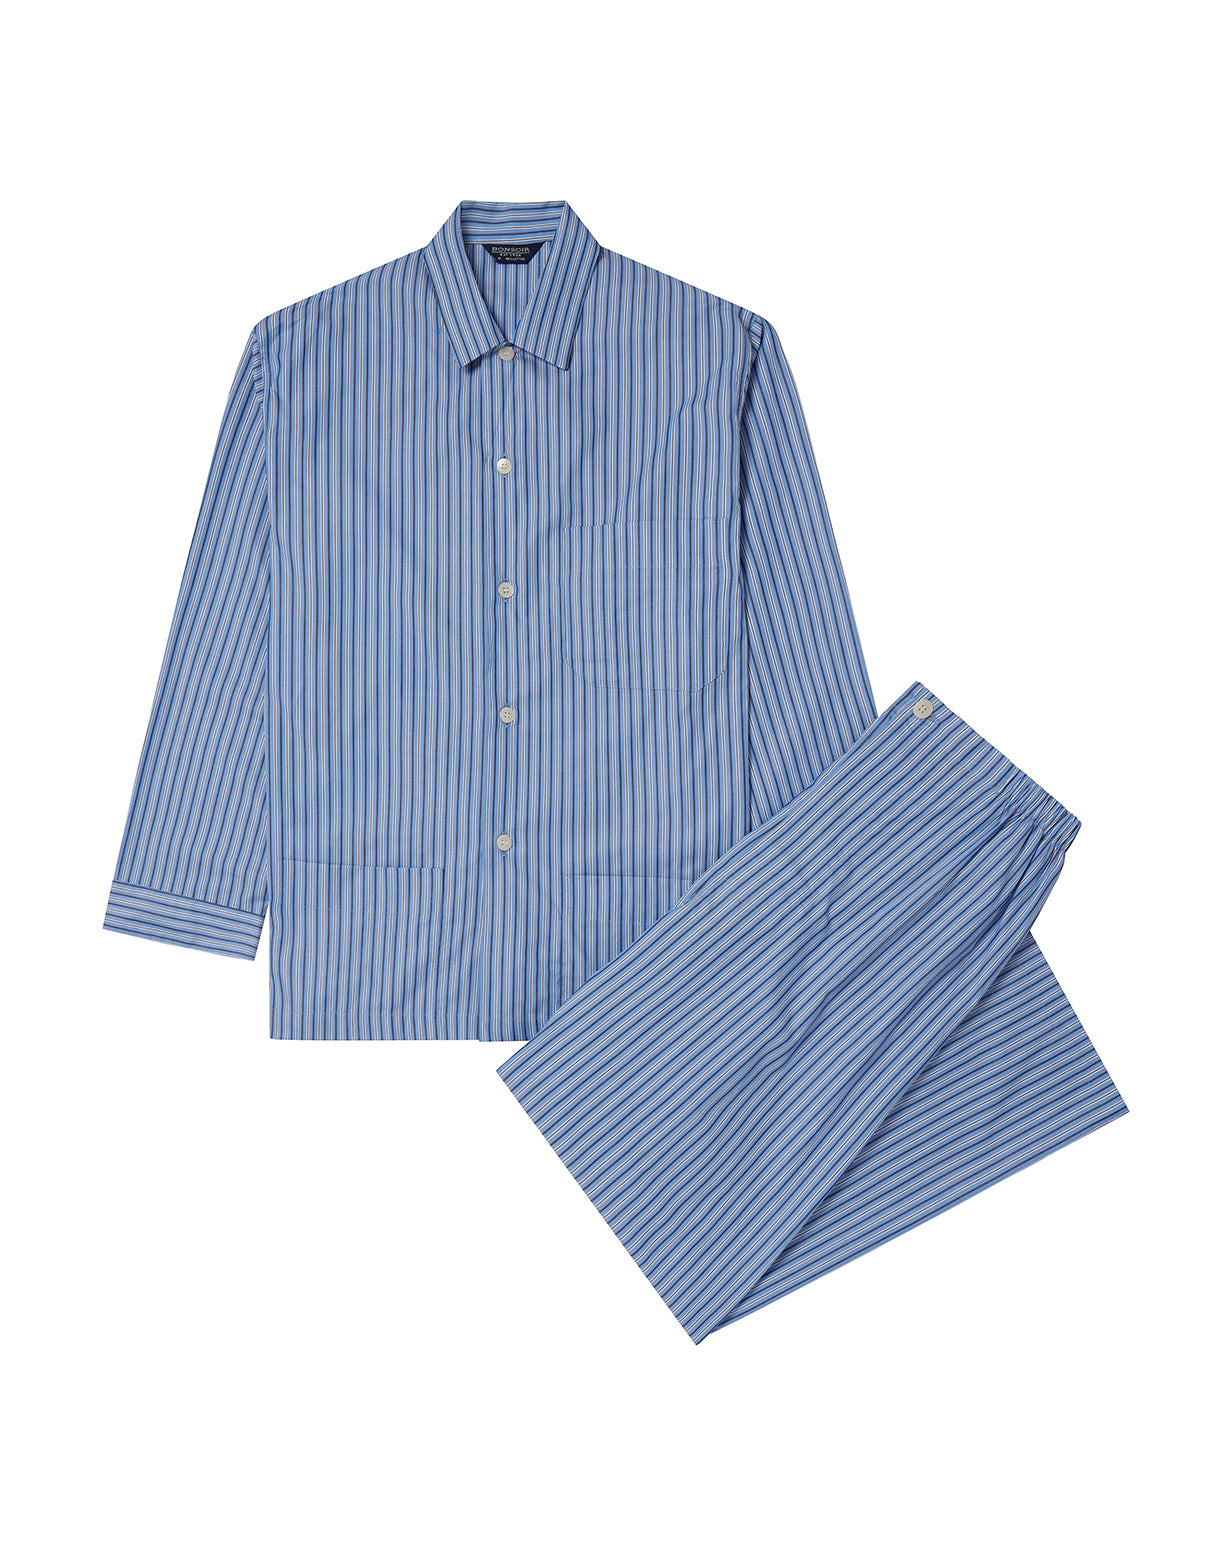 Men's Classic Cotton Pyjamas - A275